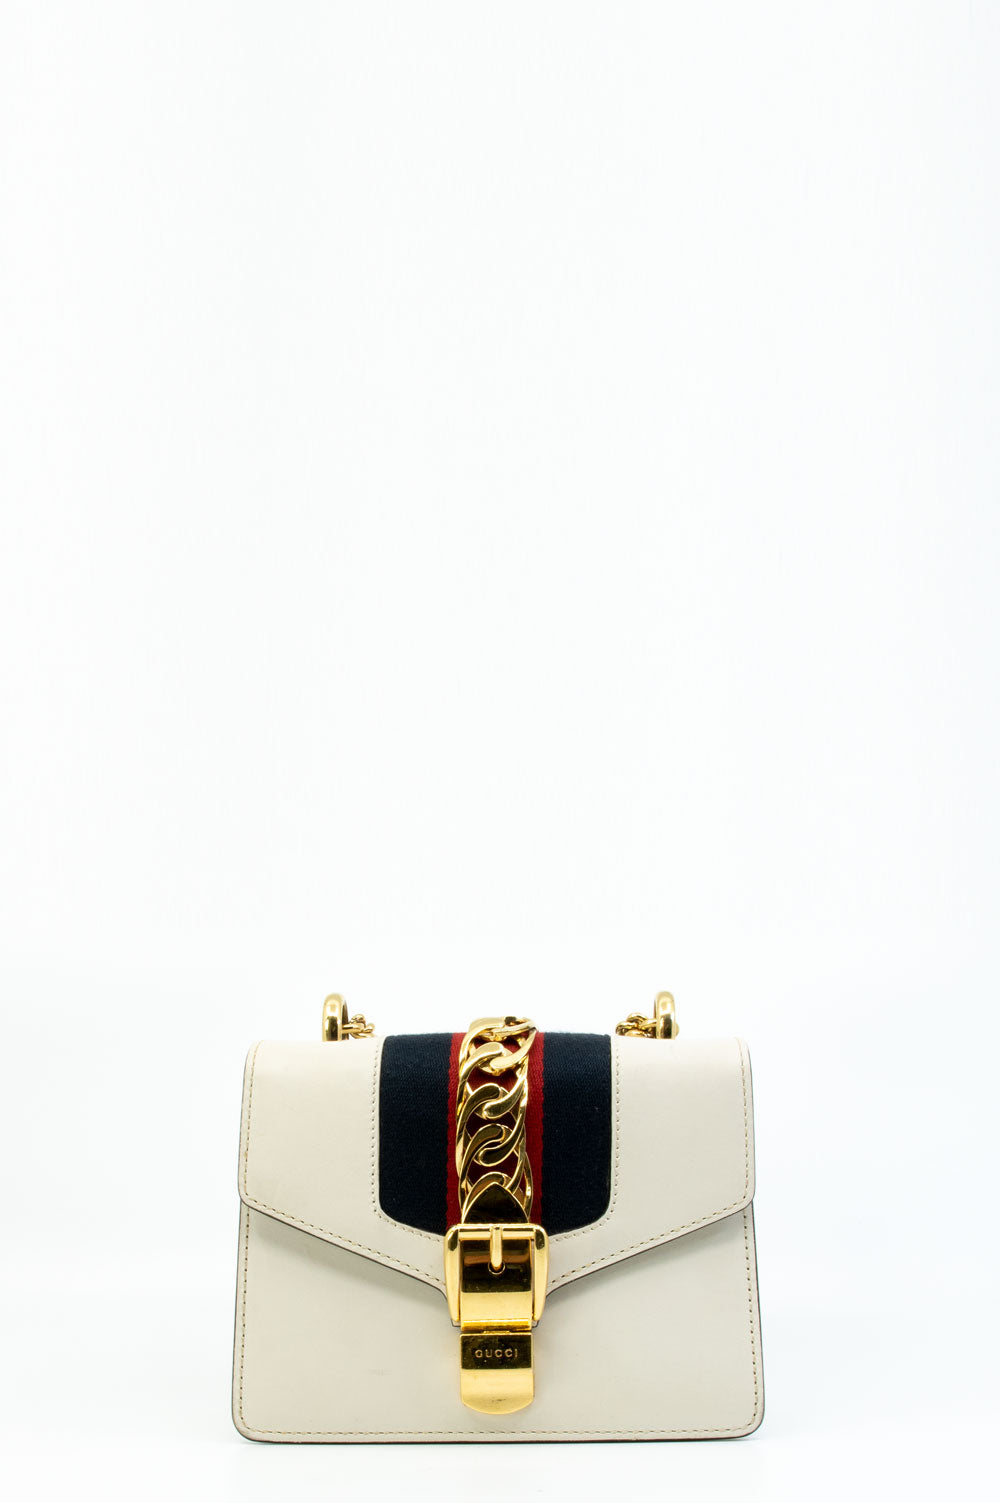 Gucci Sylvie Bag in weiss.